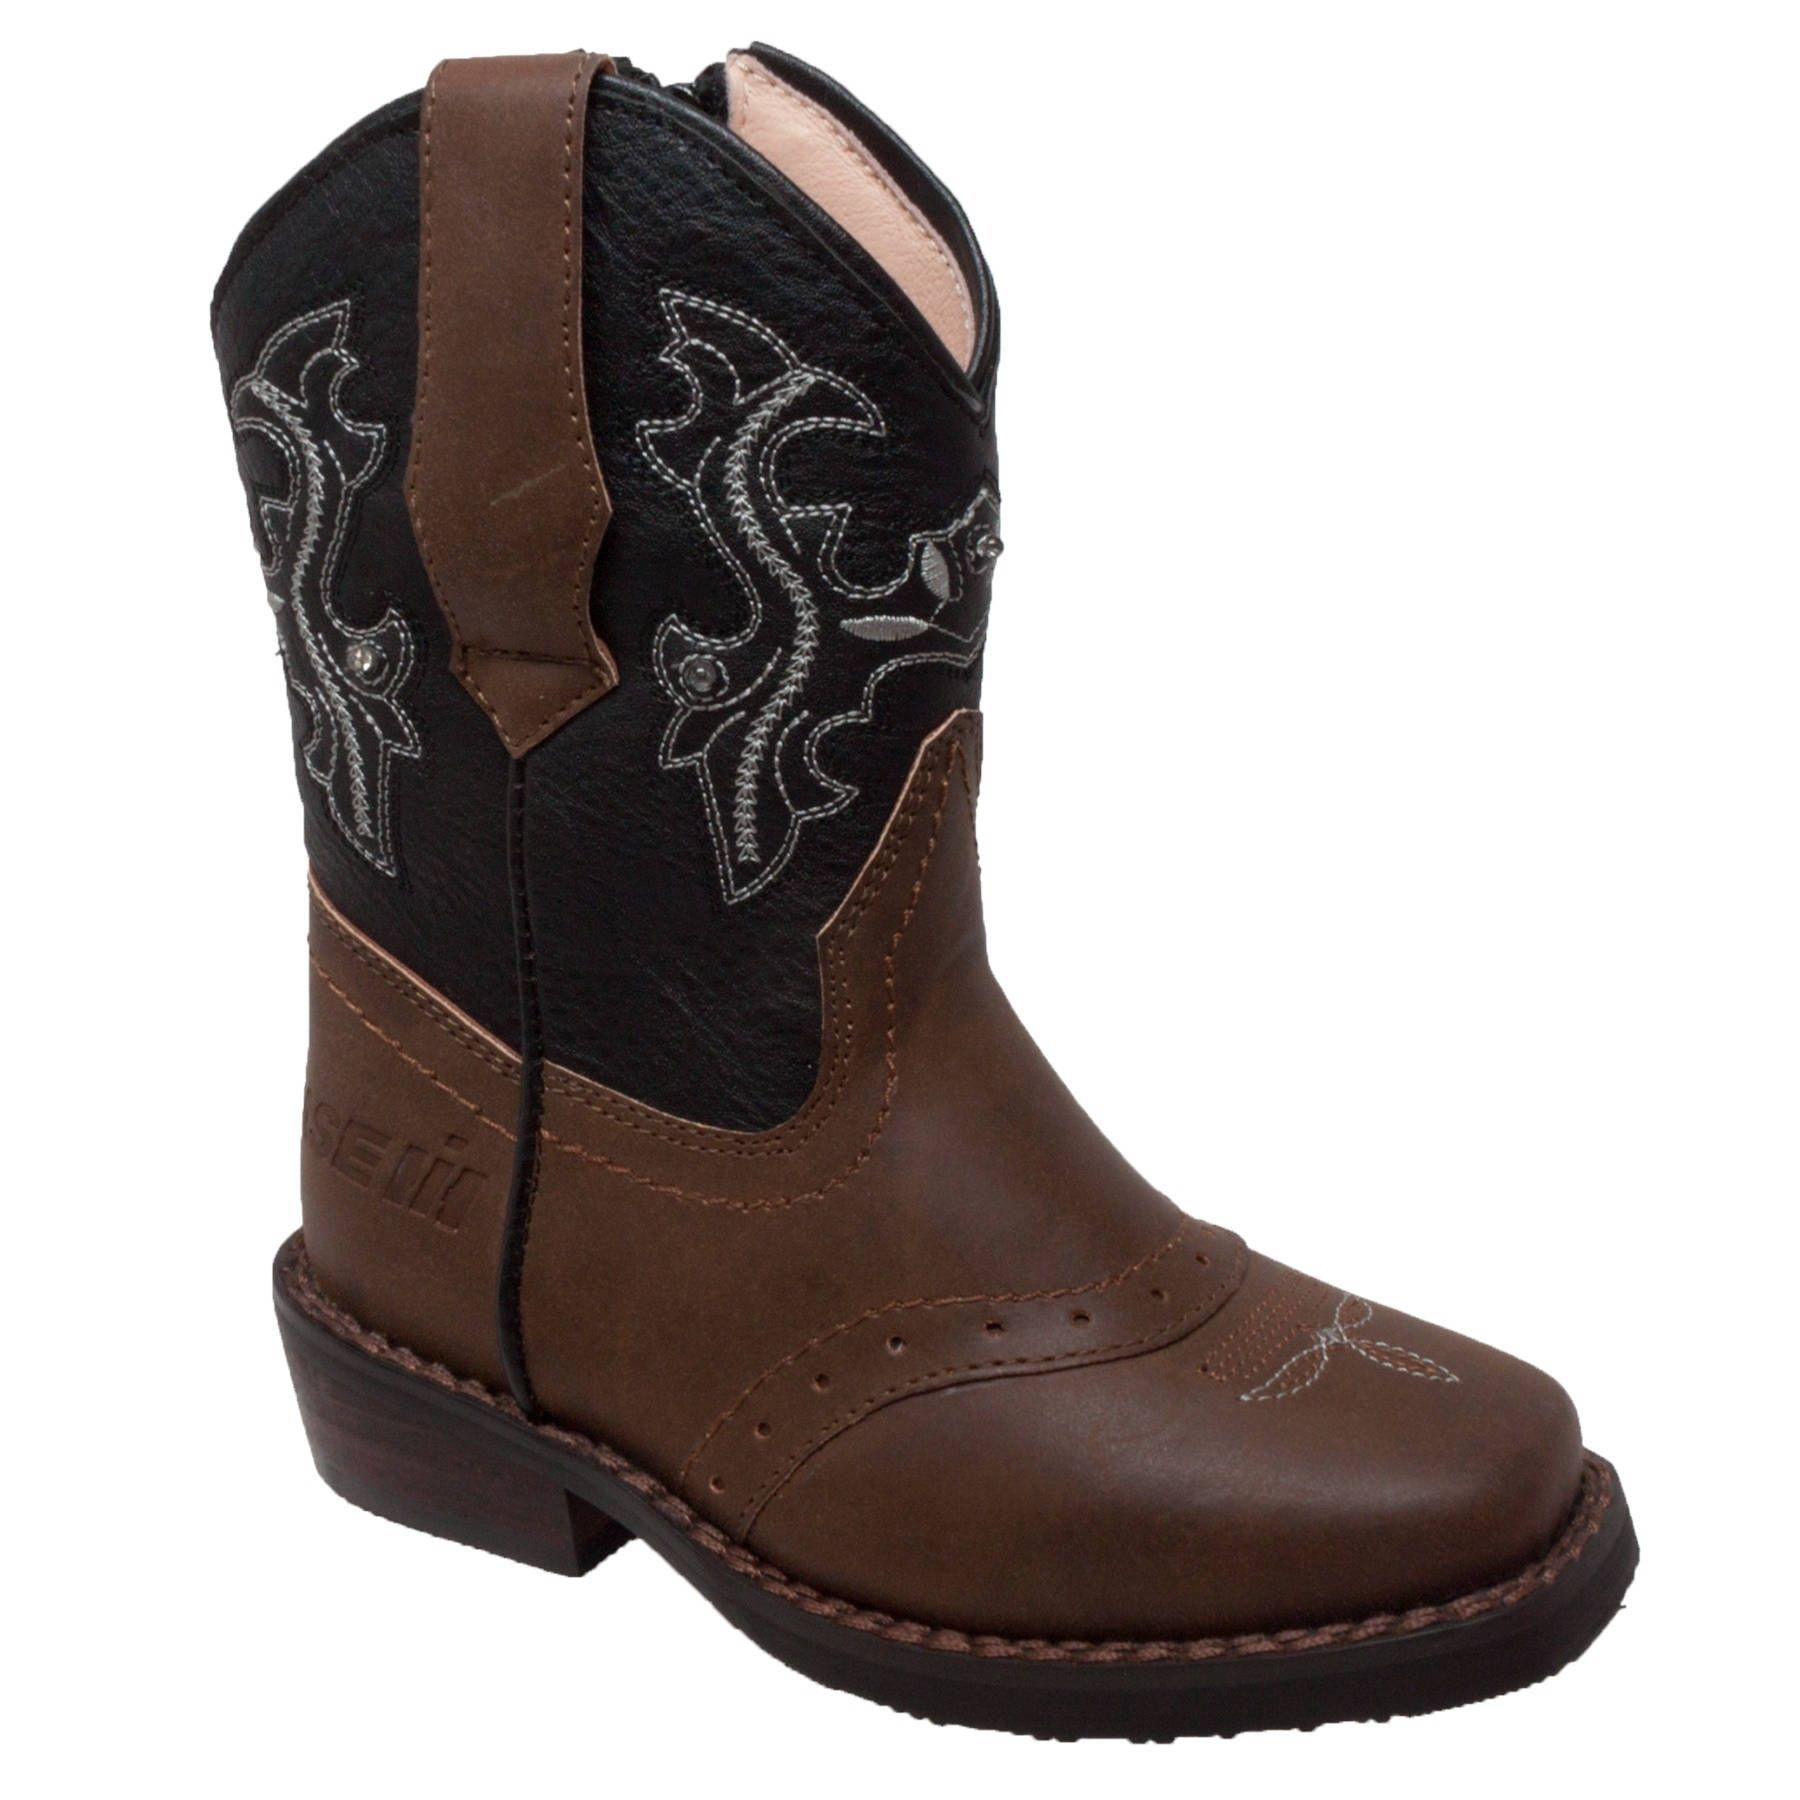 1e57f892525 Case IH Toddler's Western Light Up Boot Brown/Black (10), Toddler ...